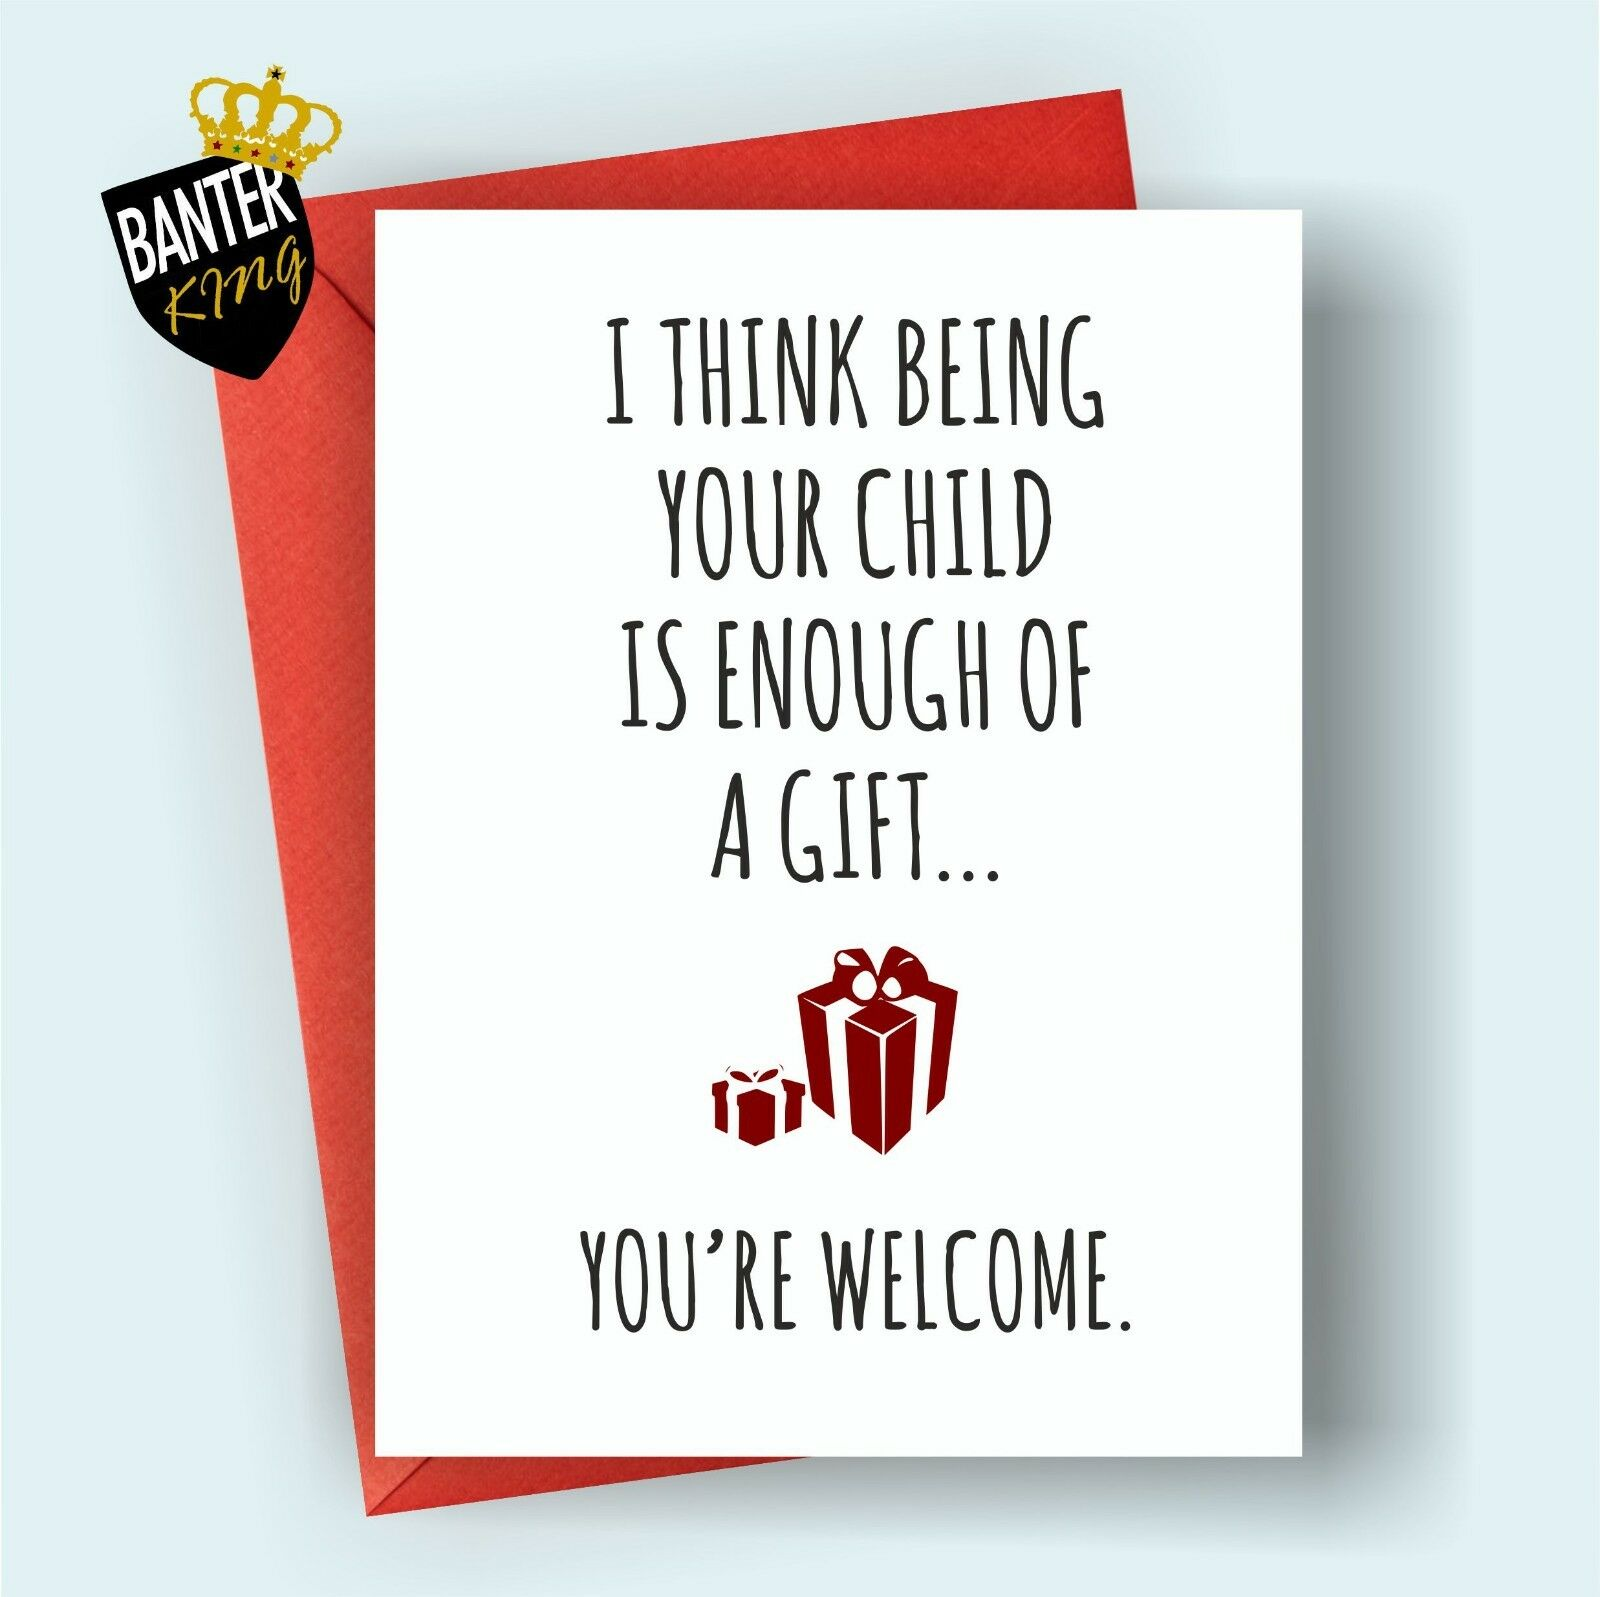 M9 happy birthday greetings card mum dad funny cheeky mothers 1 of 3free shipping m4hsunfo